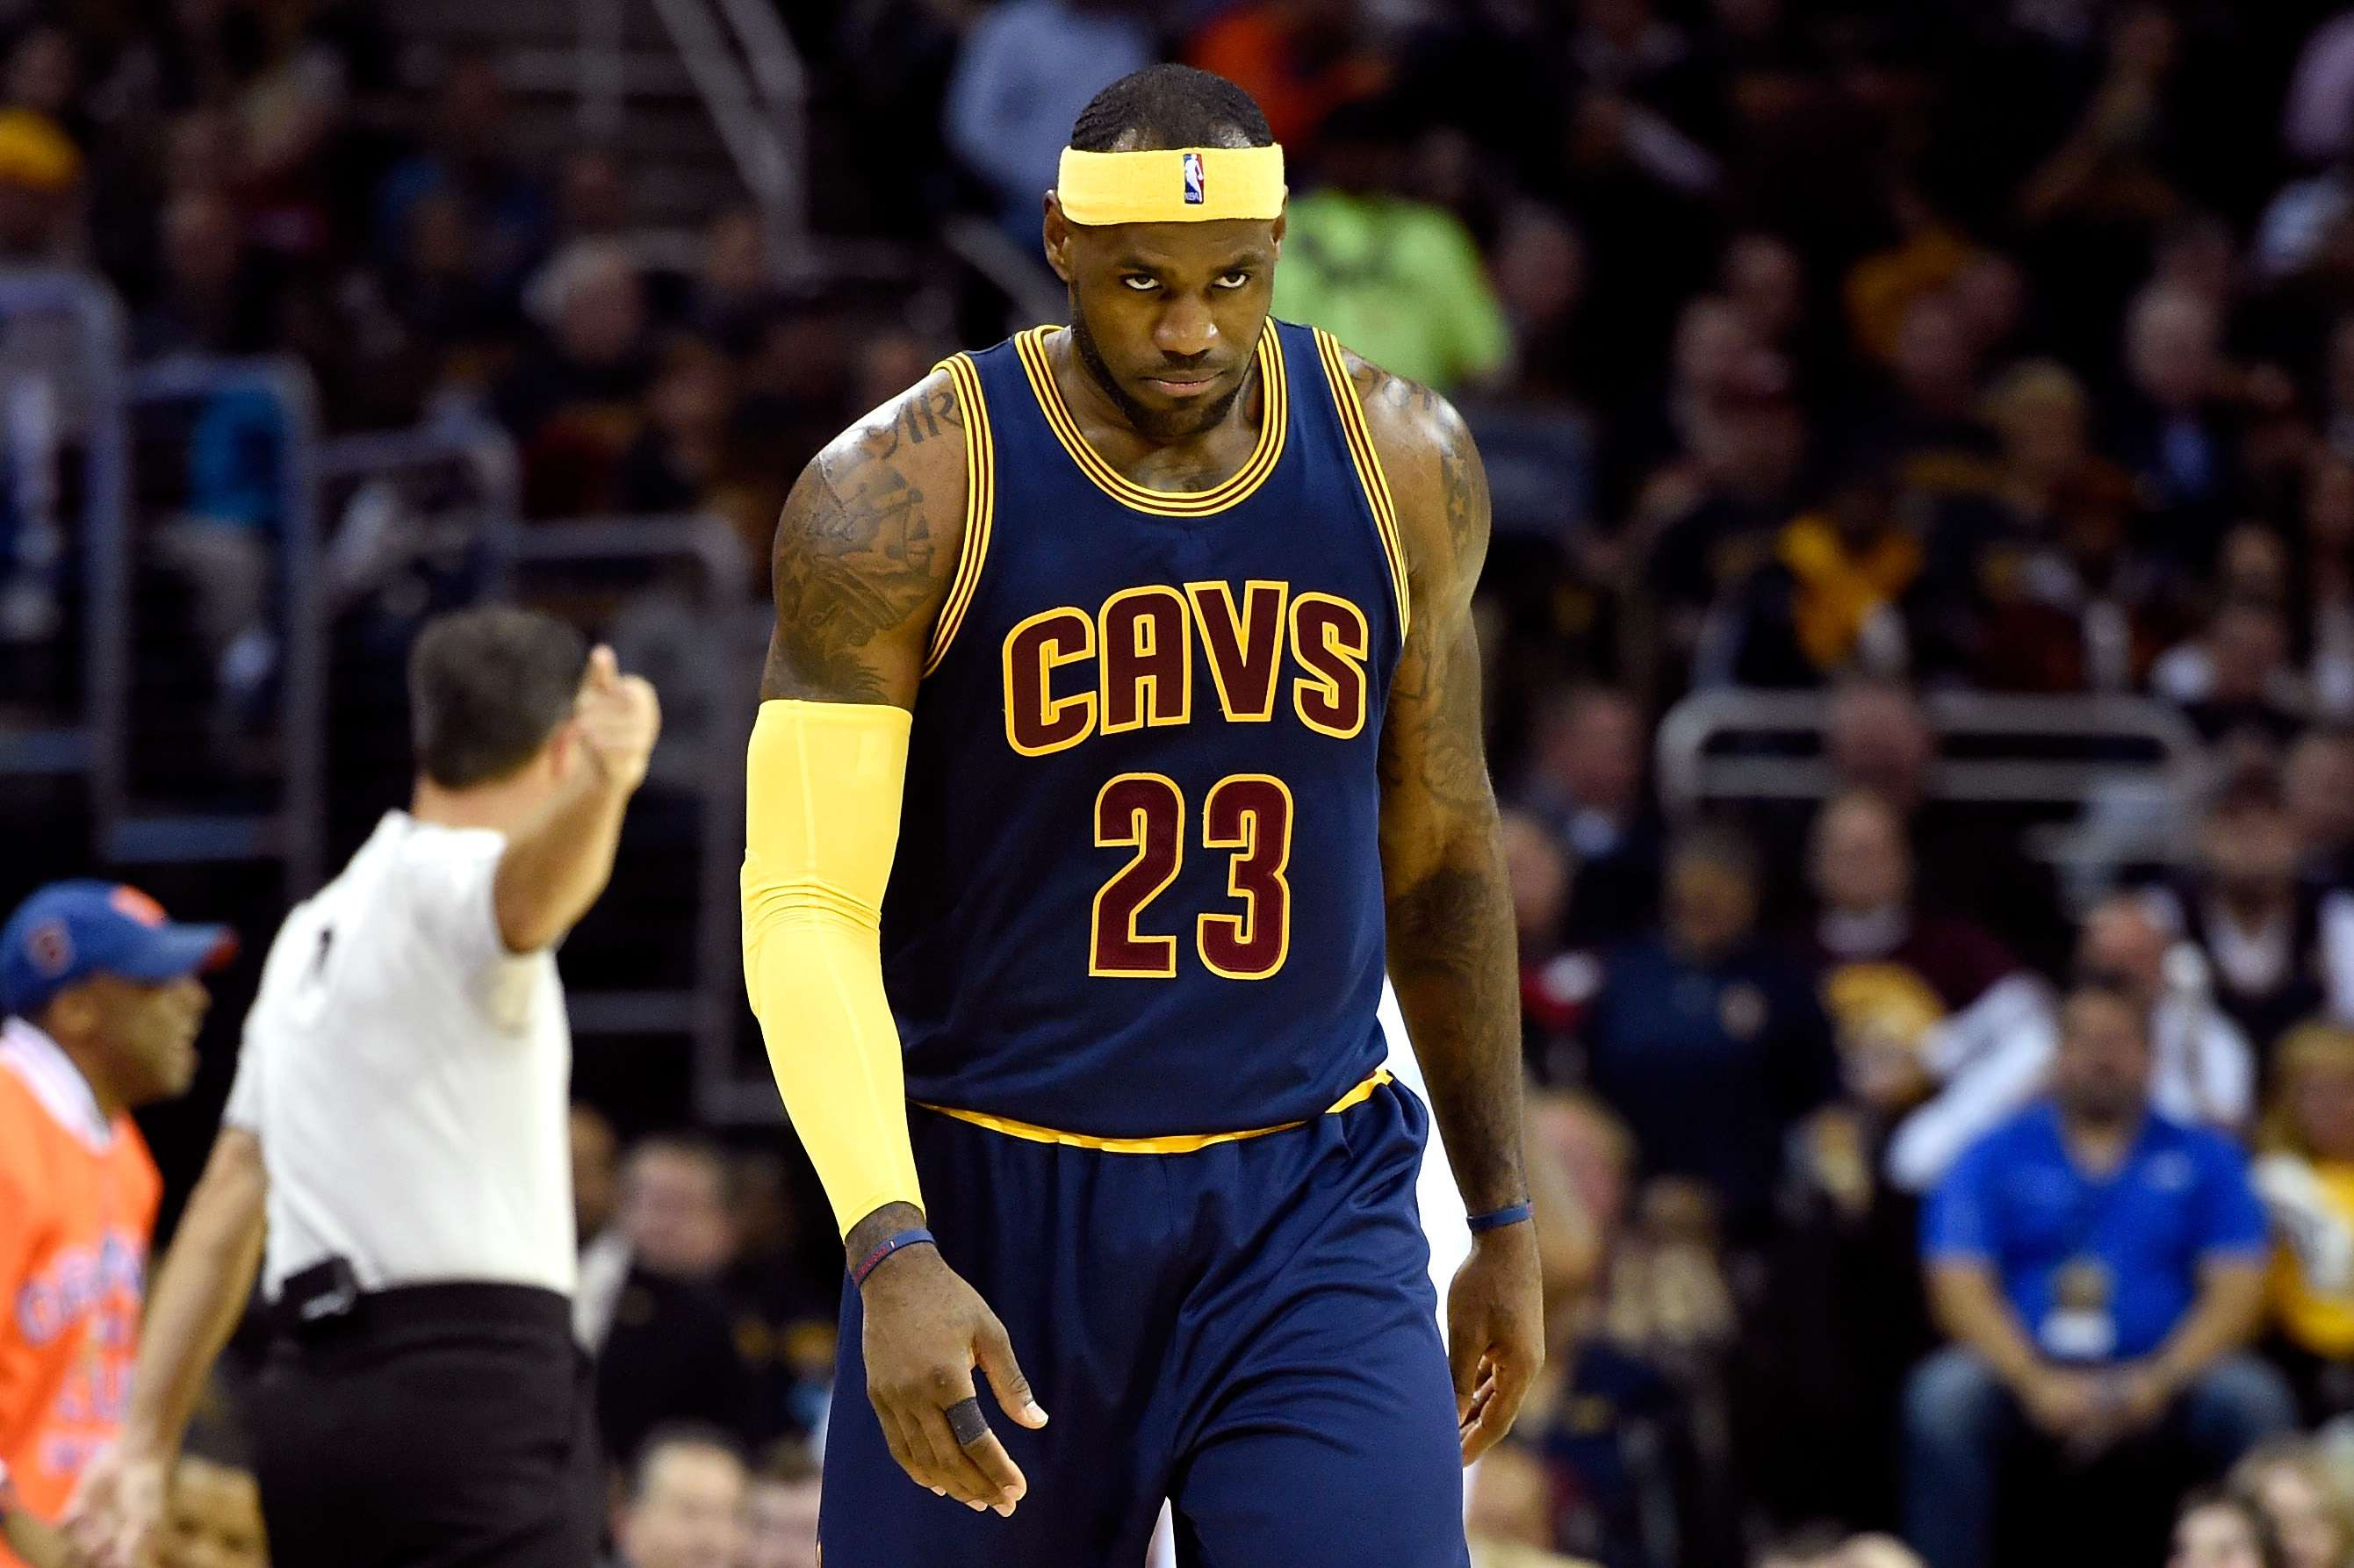 James cabizbajo tras la derrota en su regreso a Cleveland. Foto: Getty Images